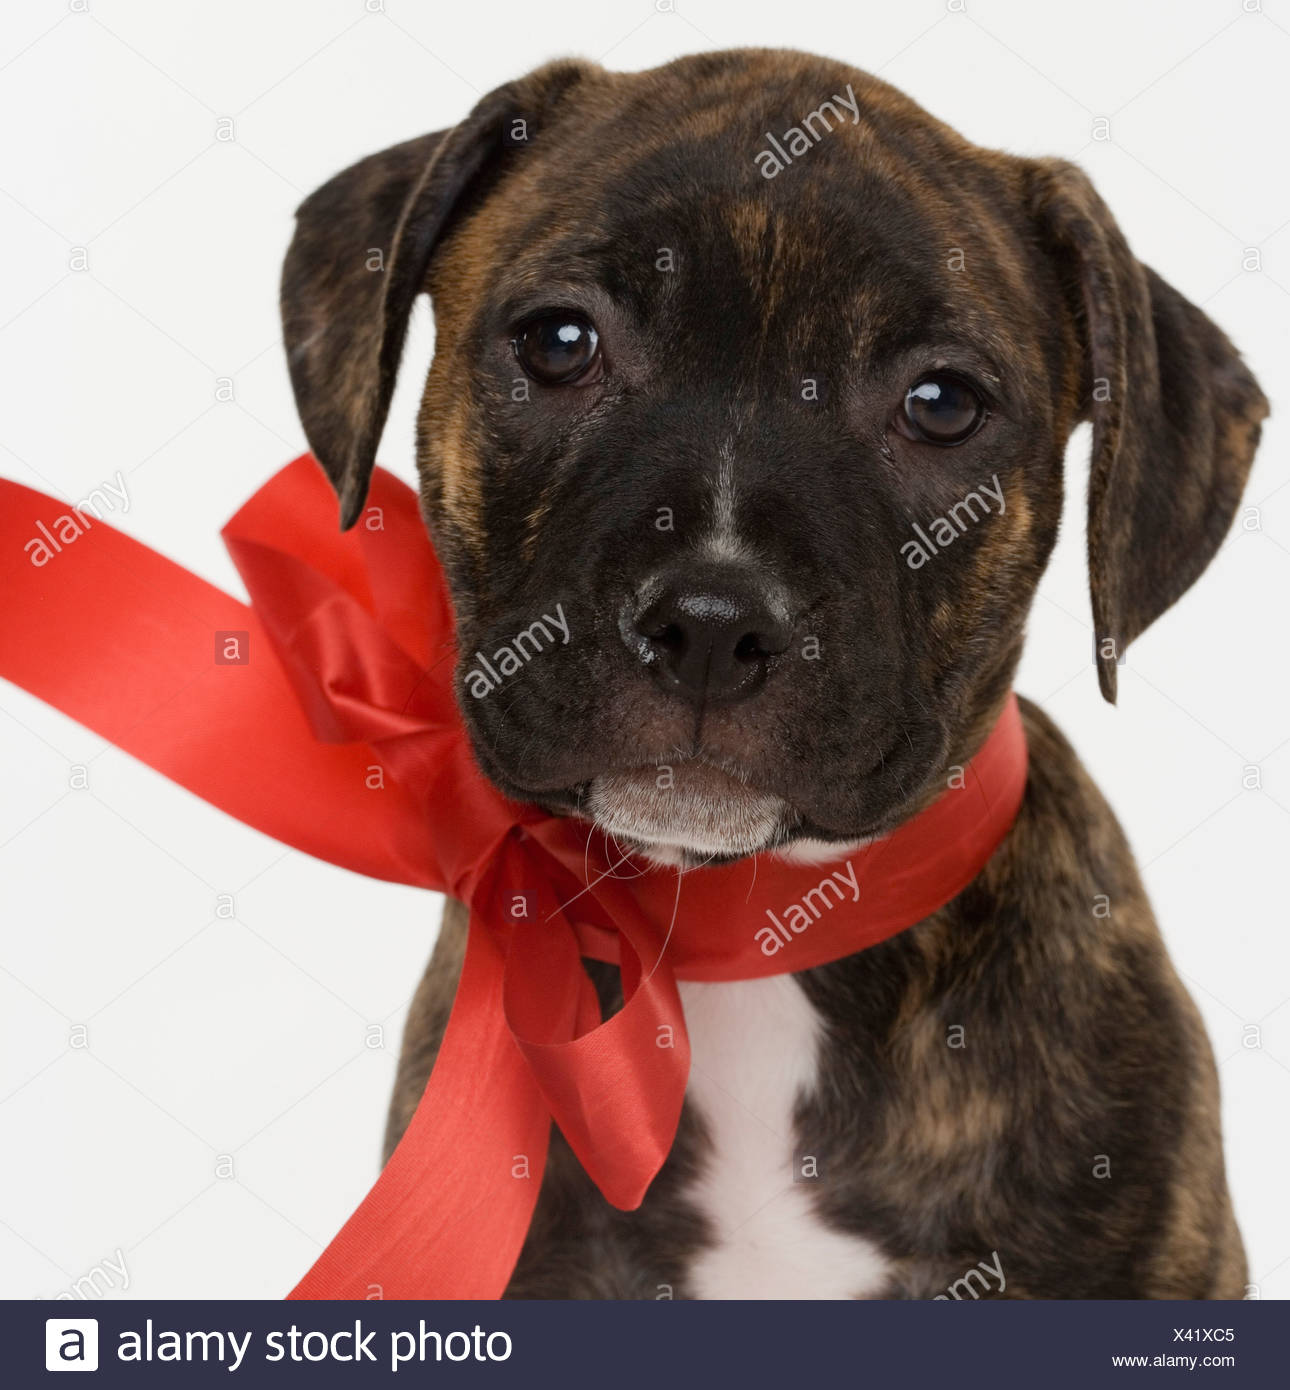 Pitbull puppy wearing red ribbon - Stock Image